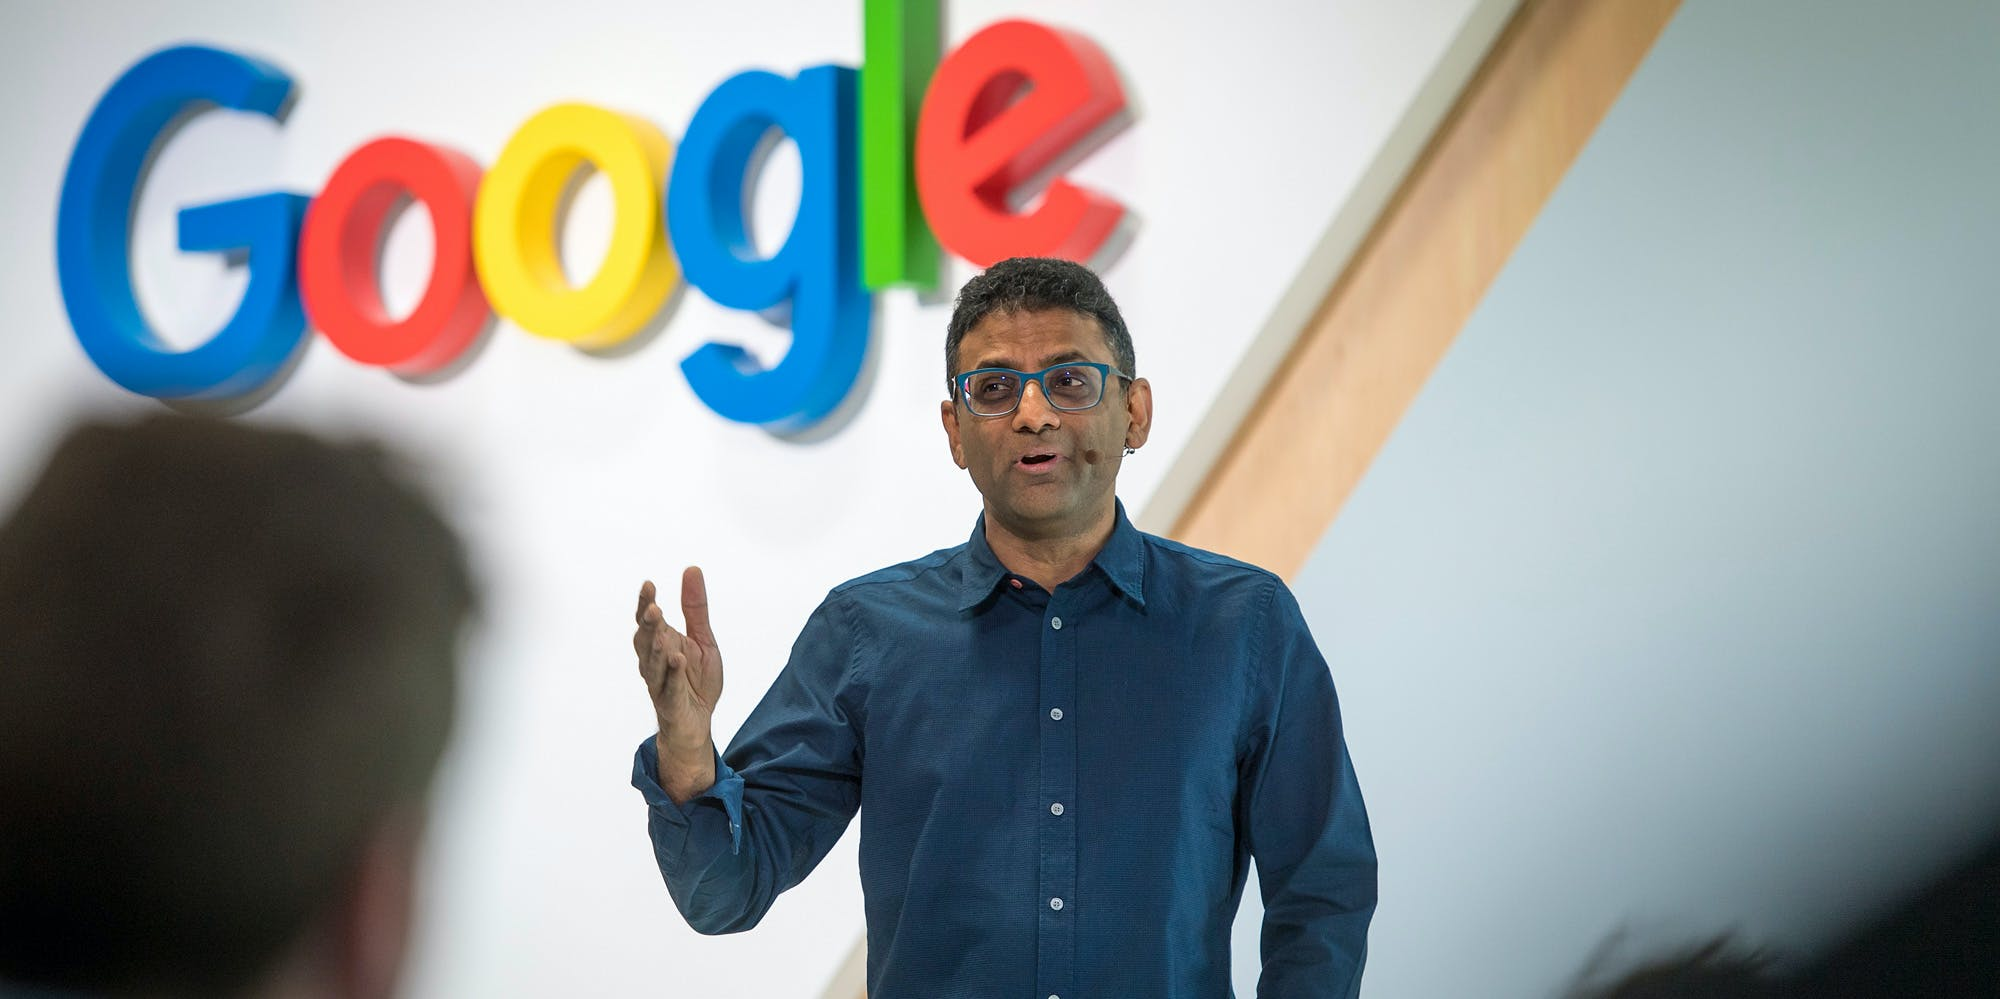 Leaked Transcript of Private Meeting Contradicts Google's Official Story on China